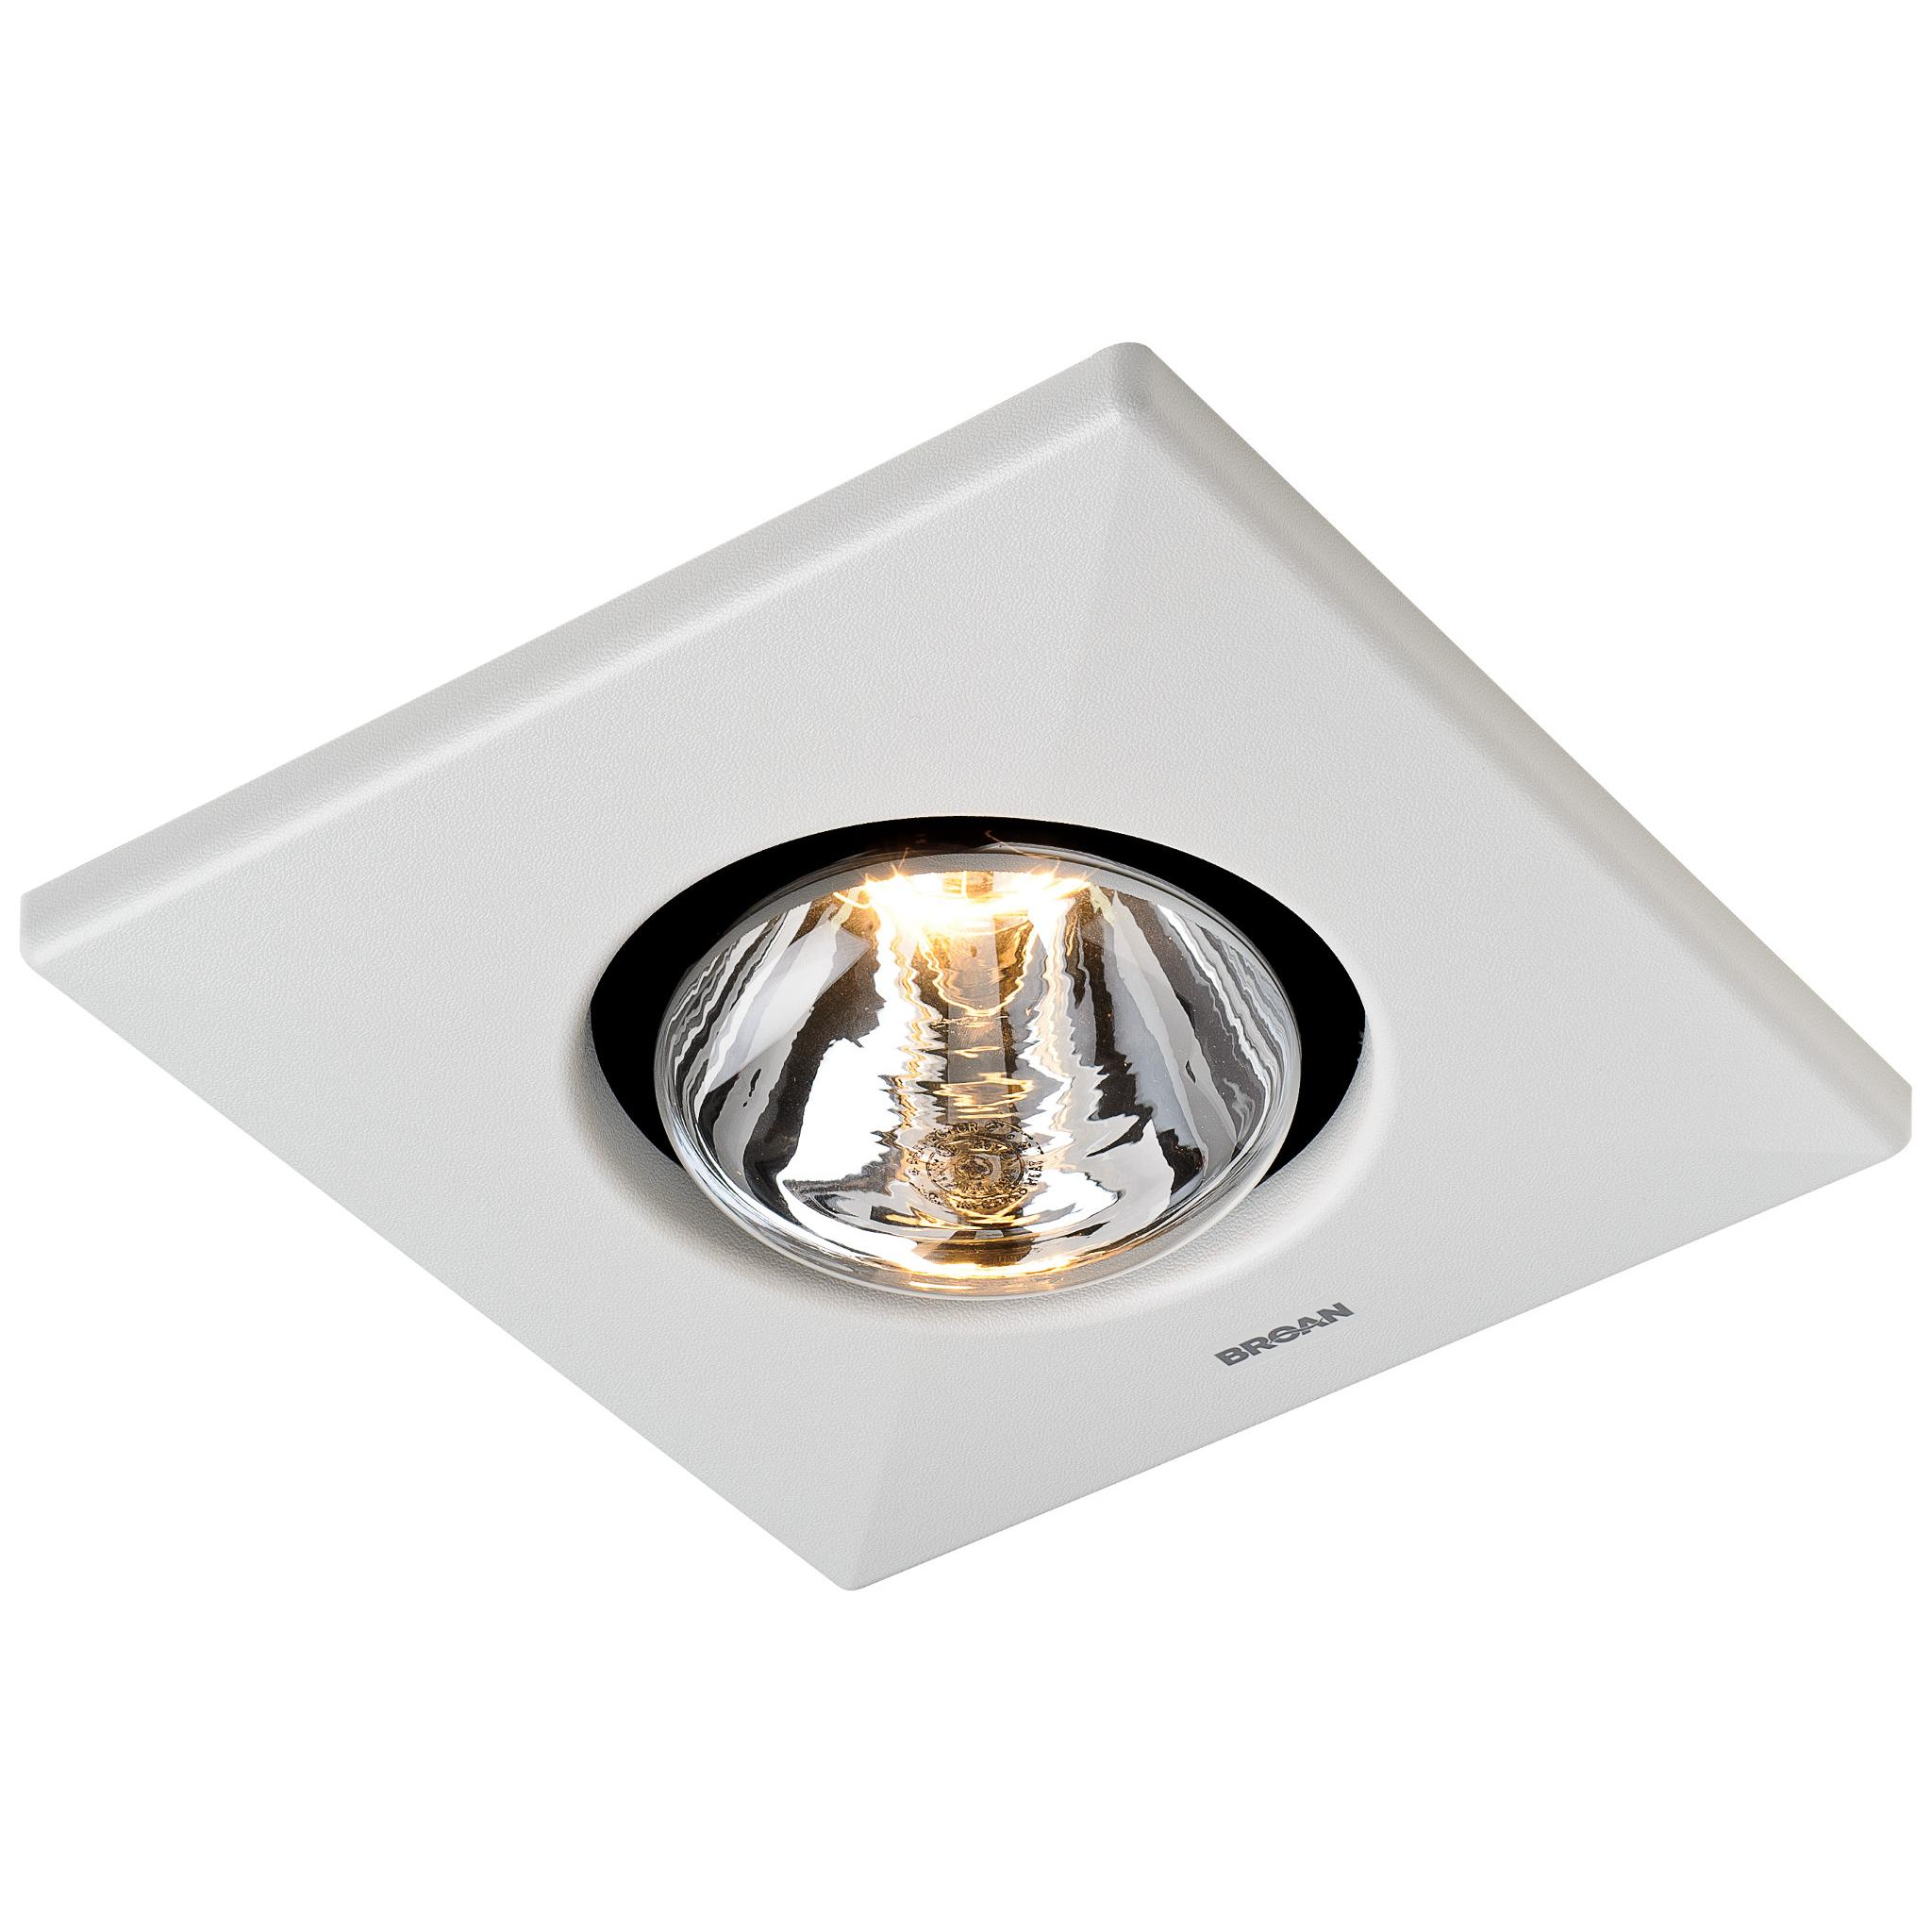 Broan 164 Type IC Infrared Two-Bulb Ceiling Heater with 4 ...